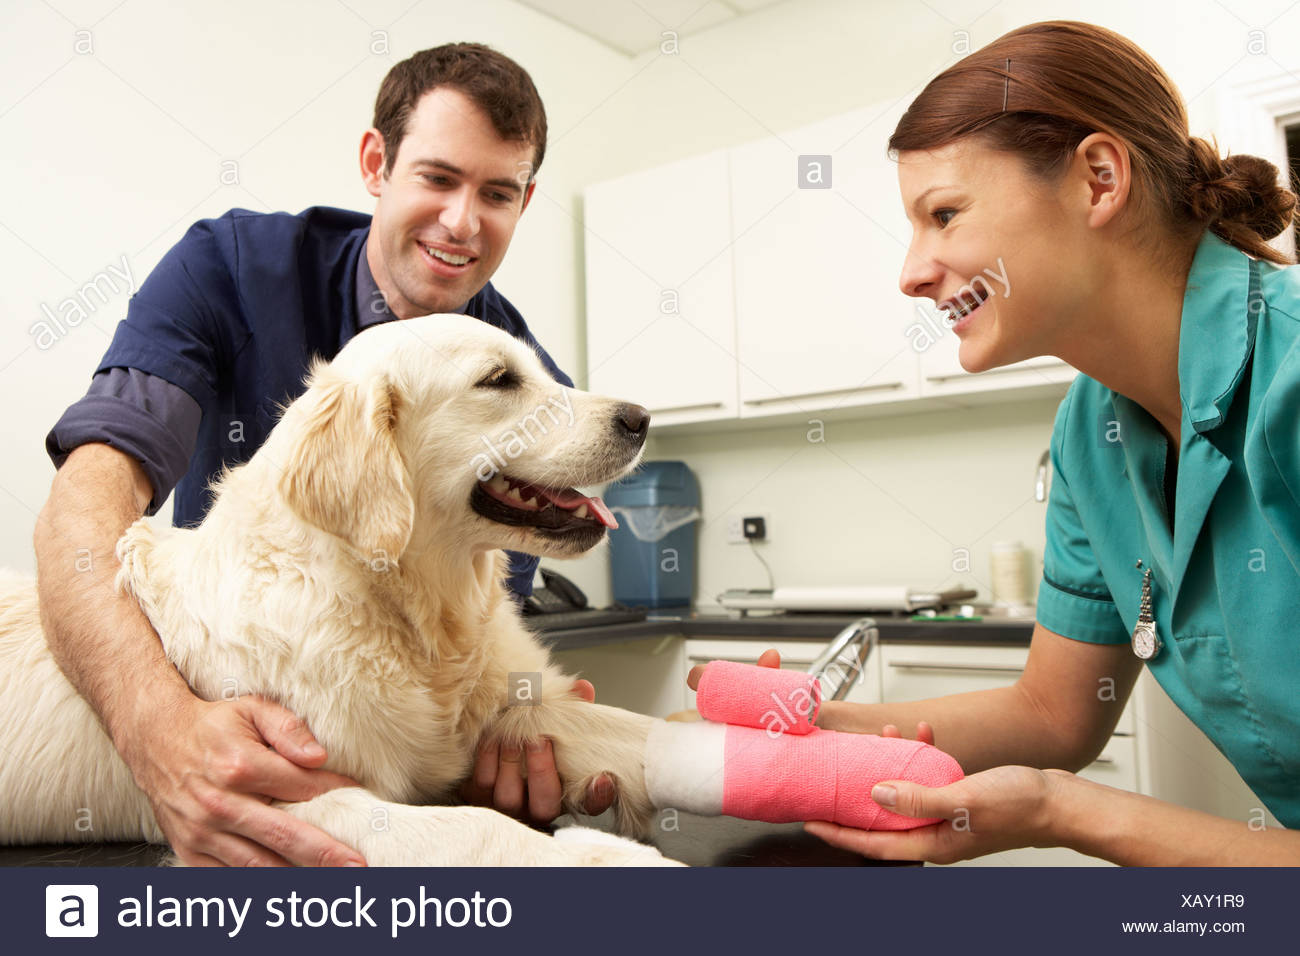 Male Veterinary Surgeon Treating Dog In Surgery - Stock Image